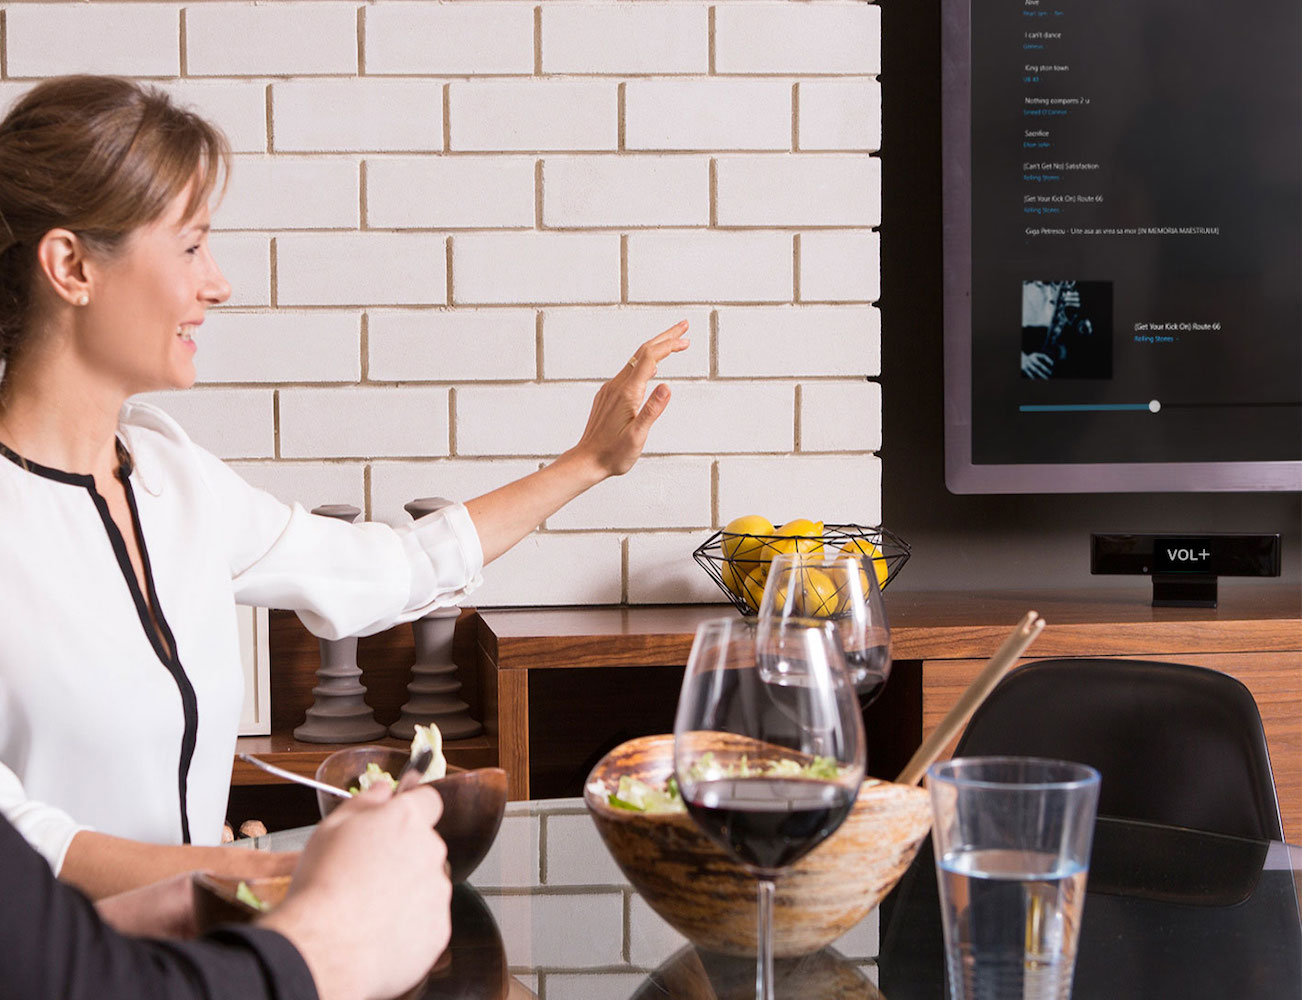 singlecue-gesture-control-for-your-home-entertainment-devices-04